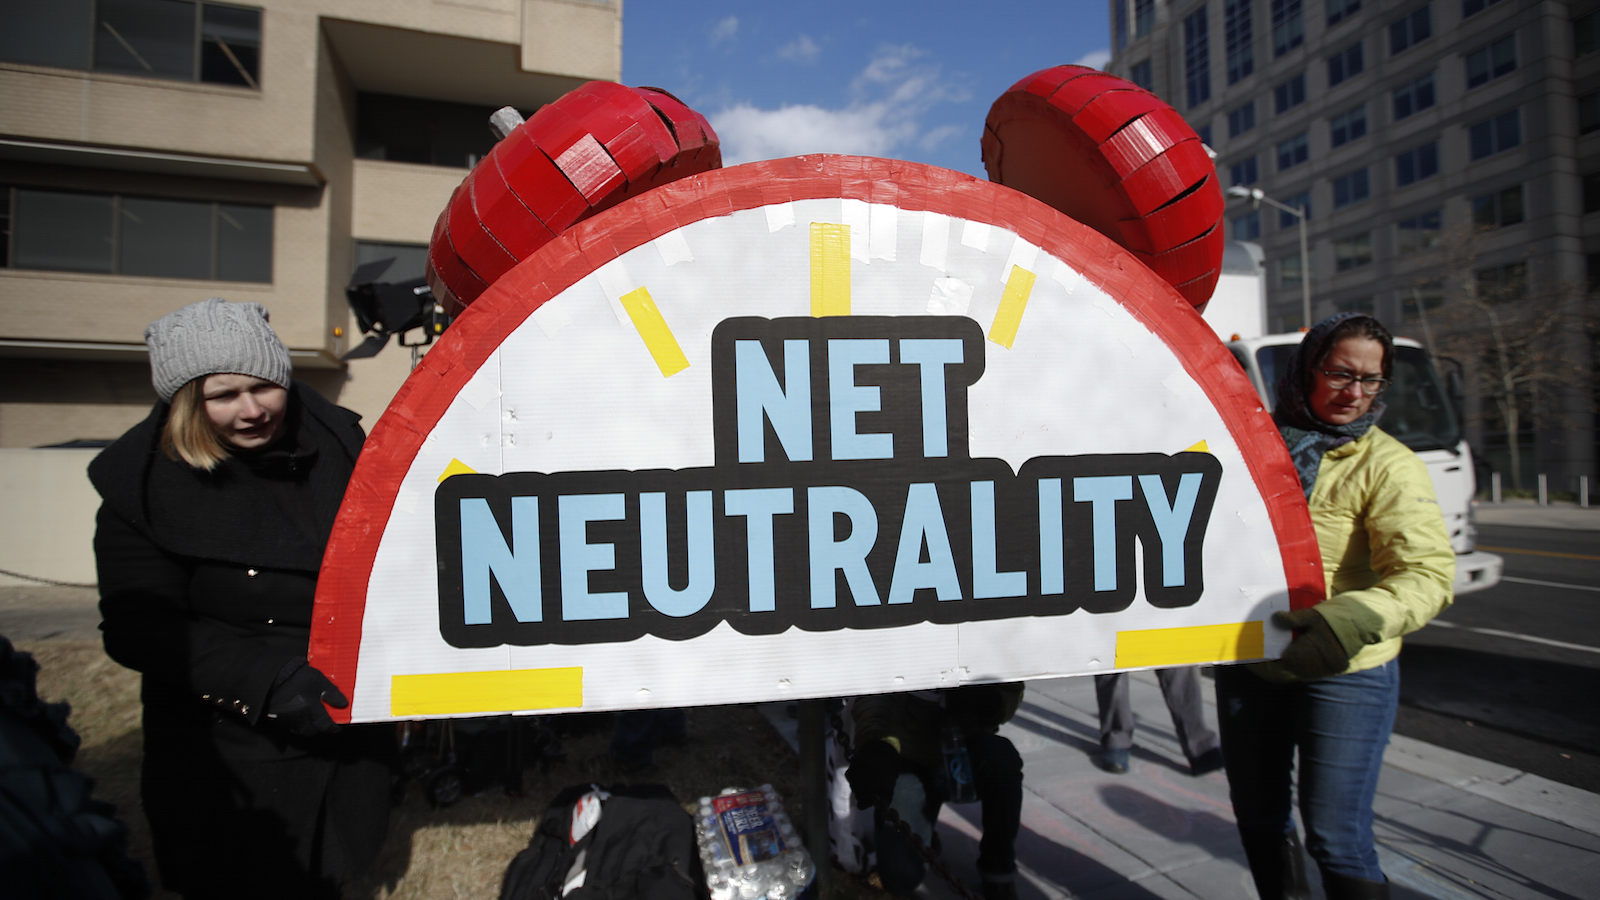 """Sammi LeMaster, left, and Katherine Fuchs, right, carry the top of an alarm clock display that reads """"Net Neutrality"""" after a protest at the Federal Communications Commission (FCC) in Washington, Thursday, Dec. 14, 2017, where the FCC is scheduled to meet and vote on net neutrality. The vote scheduled today at the FCC, could usher in big changes in how Americans use the internet, a radical departure from more than a decade of federal oversight. (AP Photo/Carolyn Kaster)"""